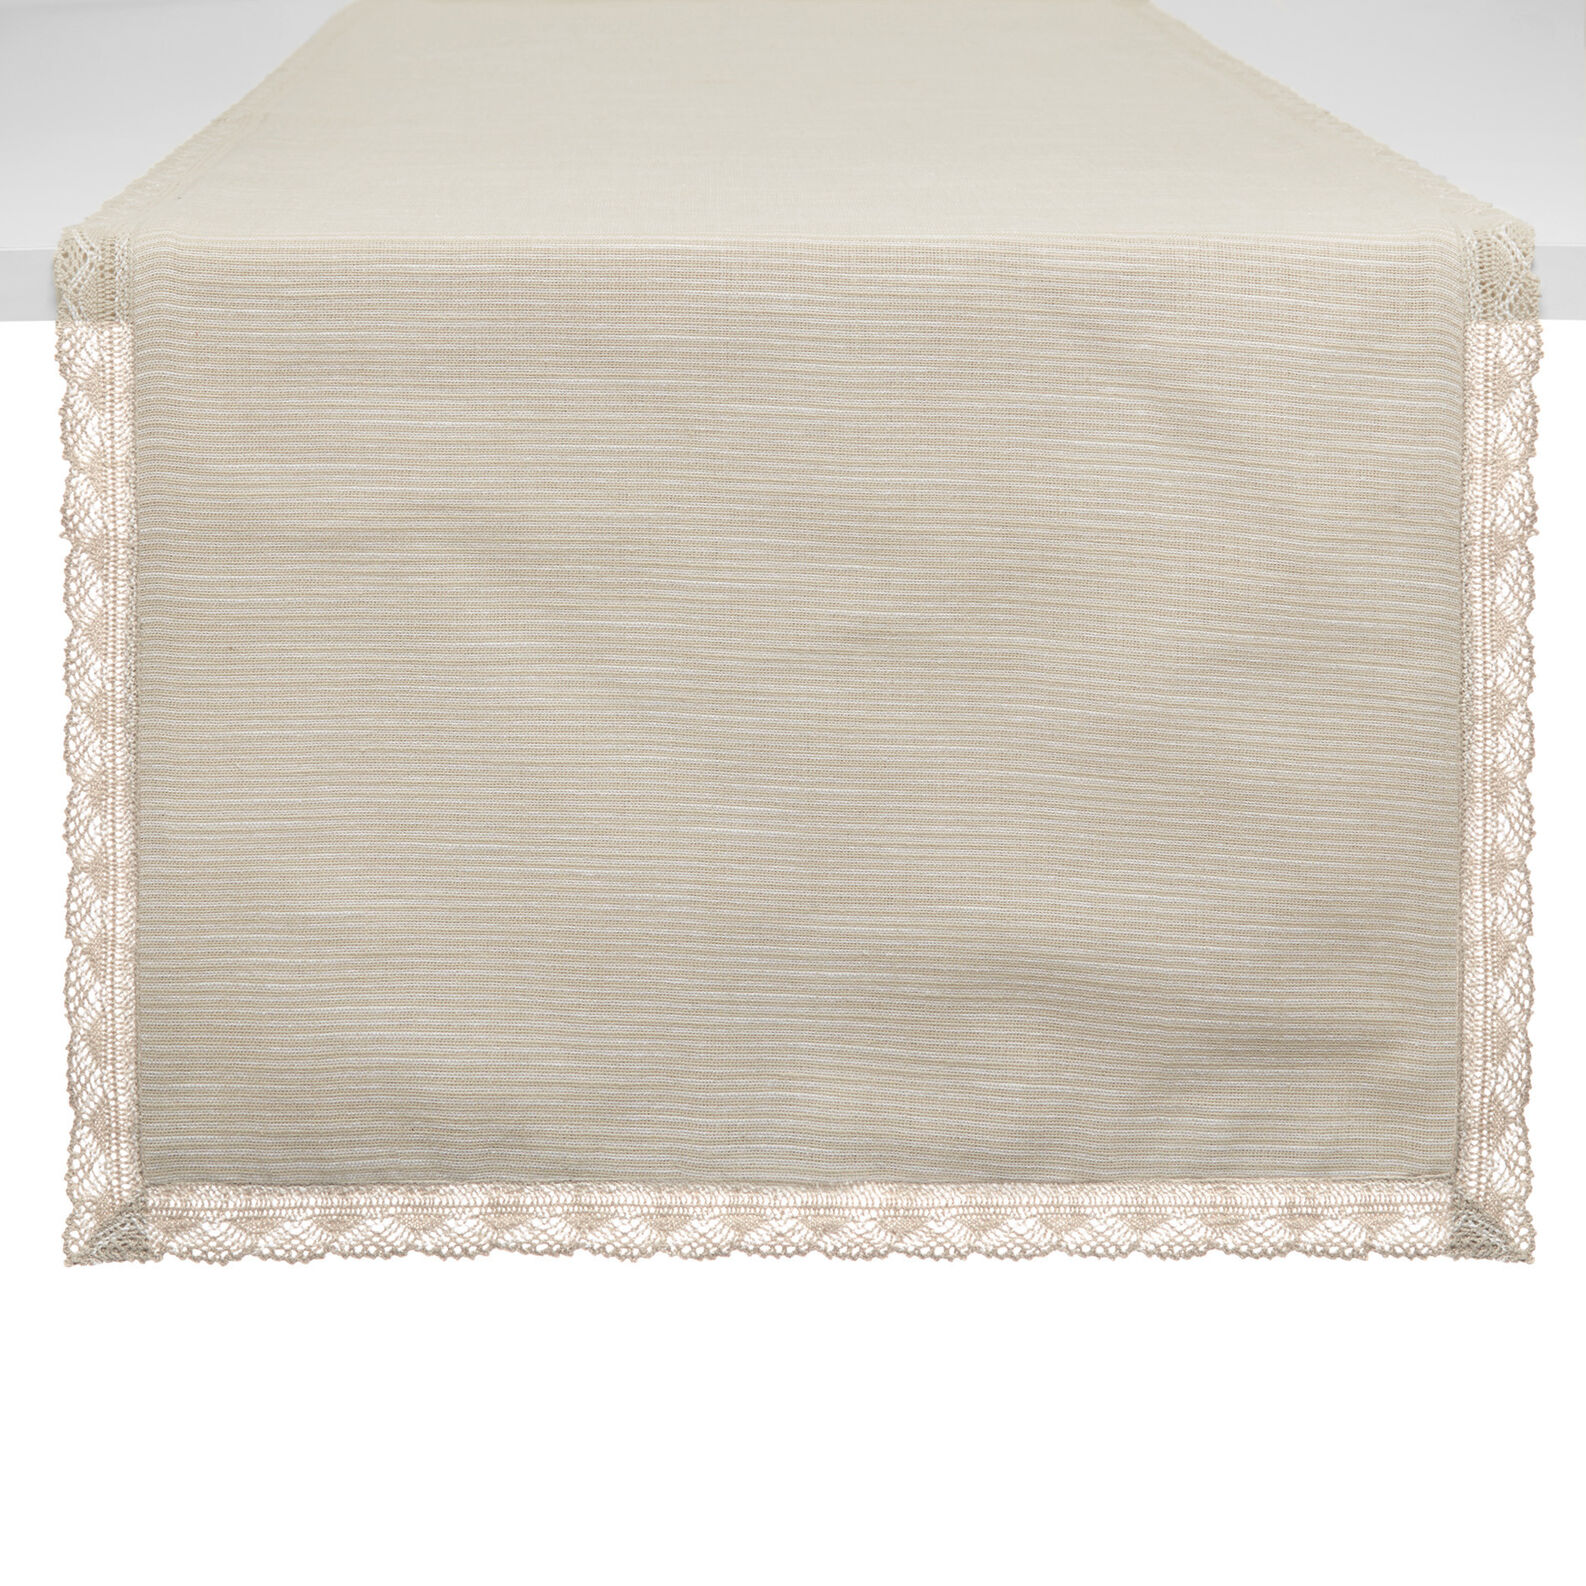 Iridescent cotton table runner with lace trim